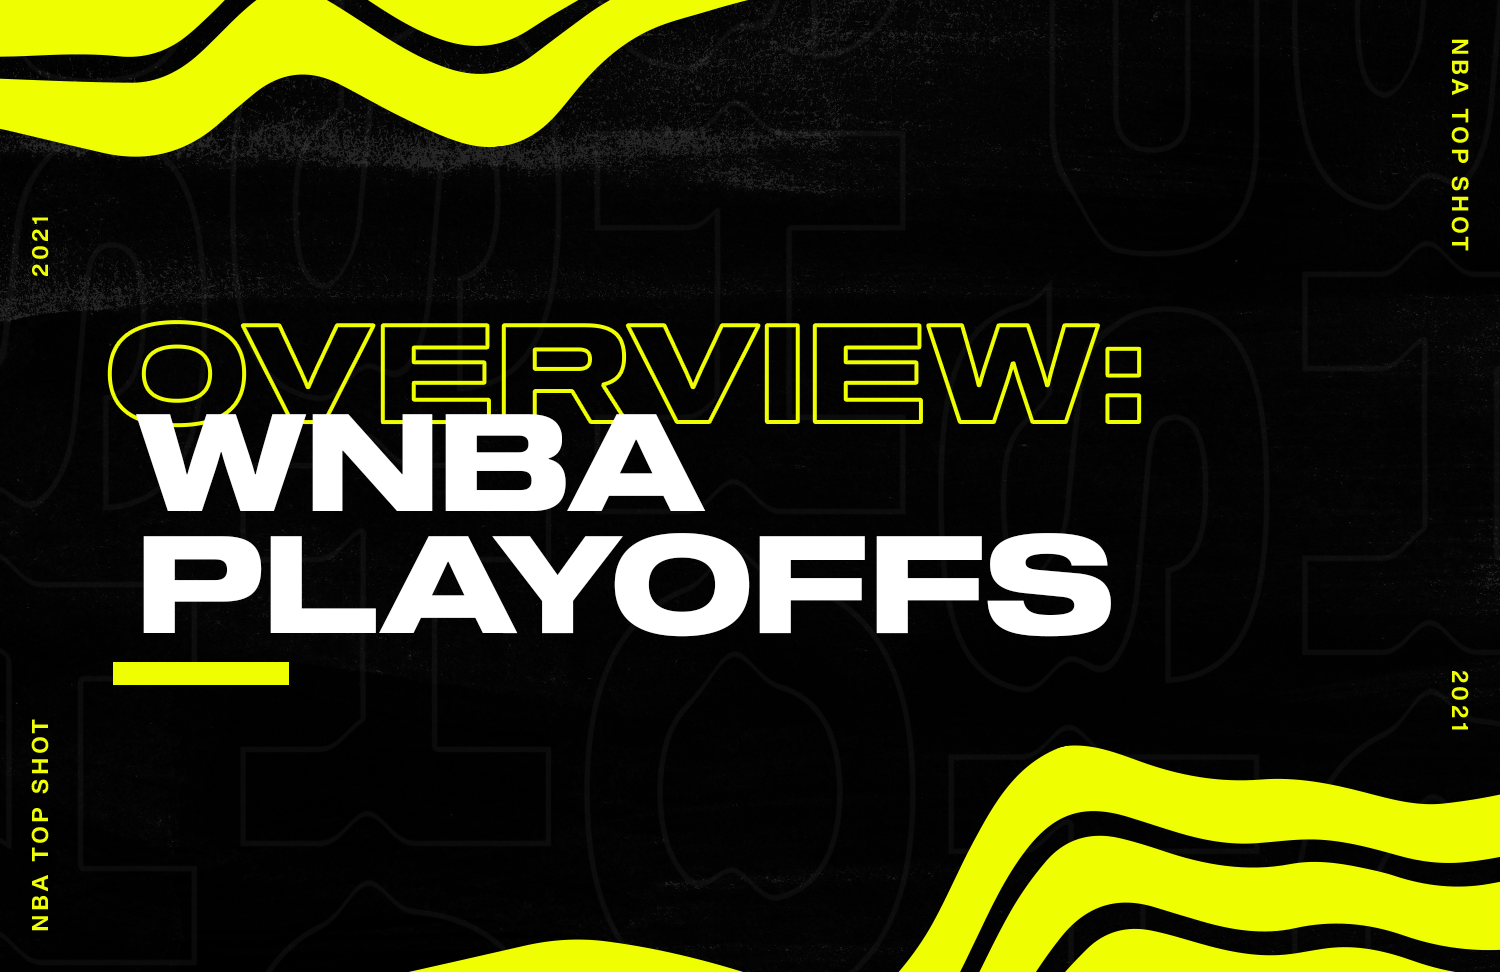 The WNBA Playoffs start this week and there's a lot to know. Let's dive into the playoff structure and the players to watch.